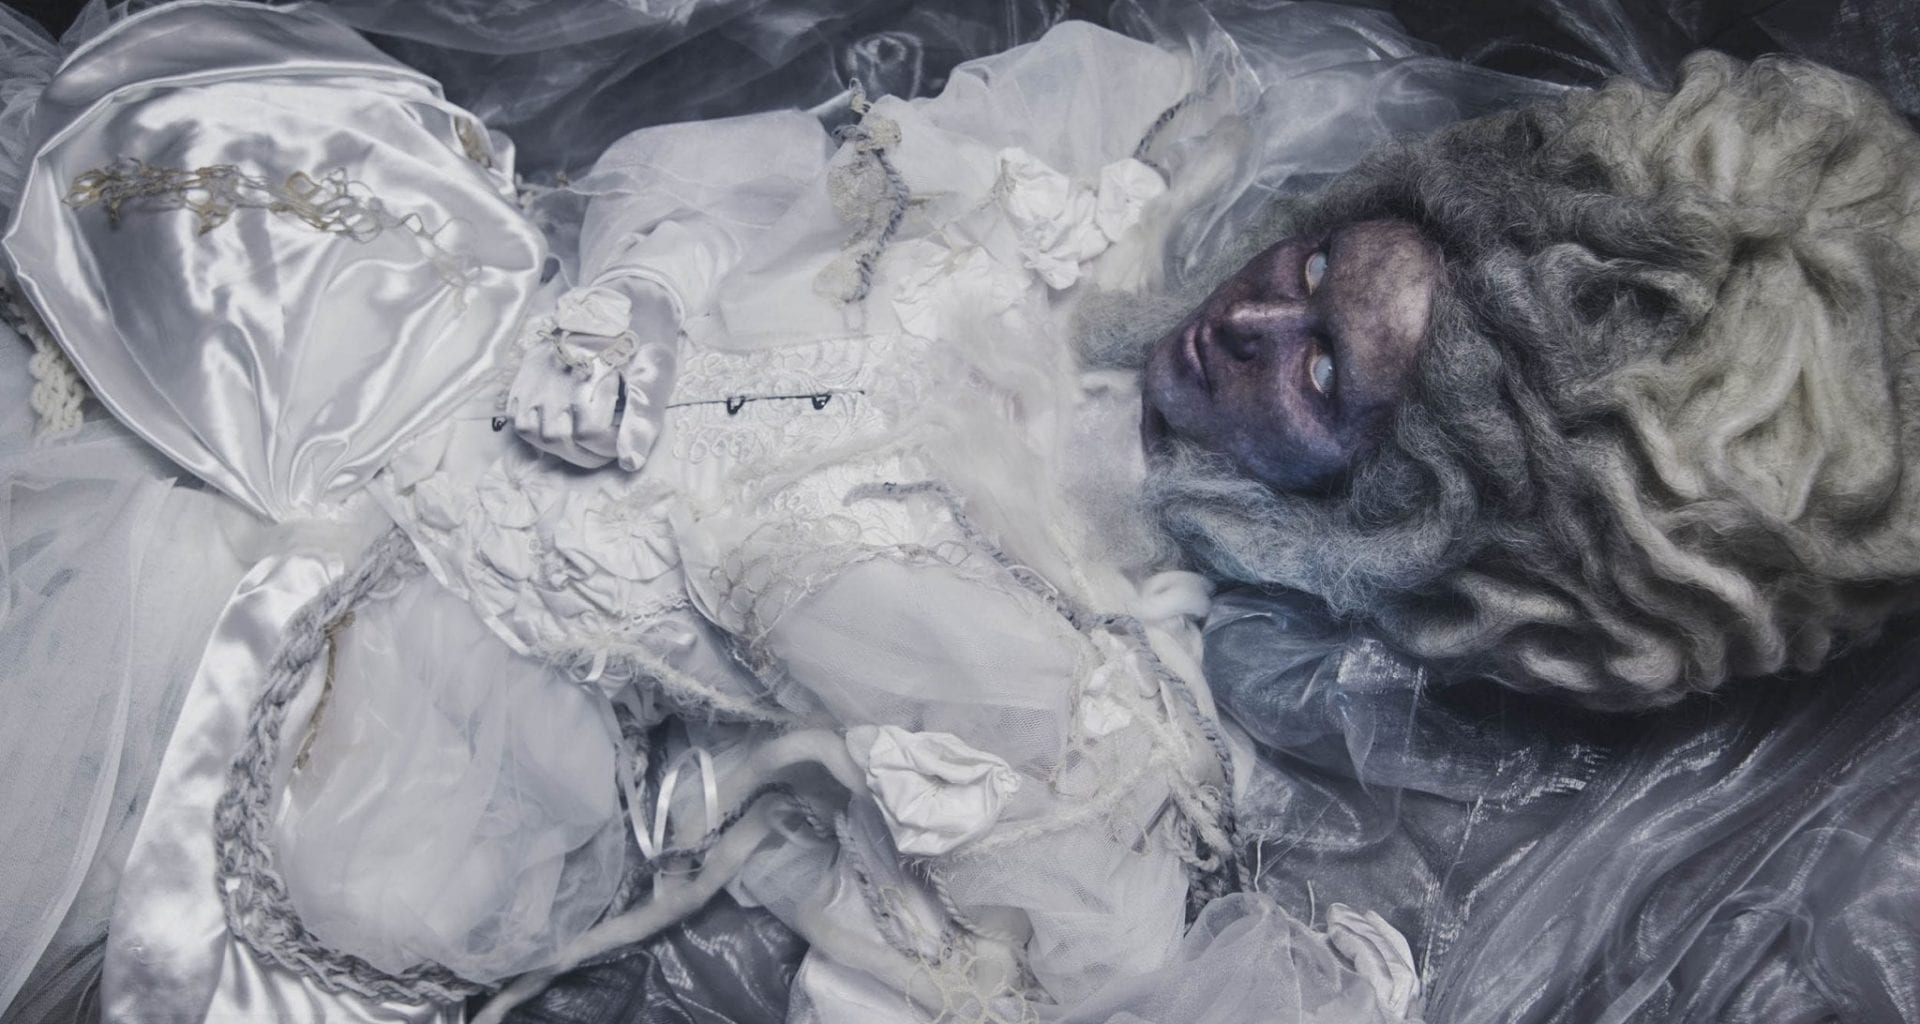 A woman lying down, styled with a matted, grey Elizabethan style wig. Glazed grey eyes and a visible vein-like skin texture